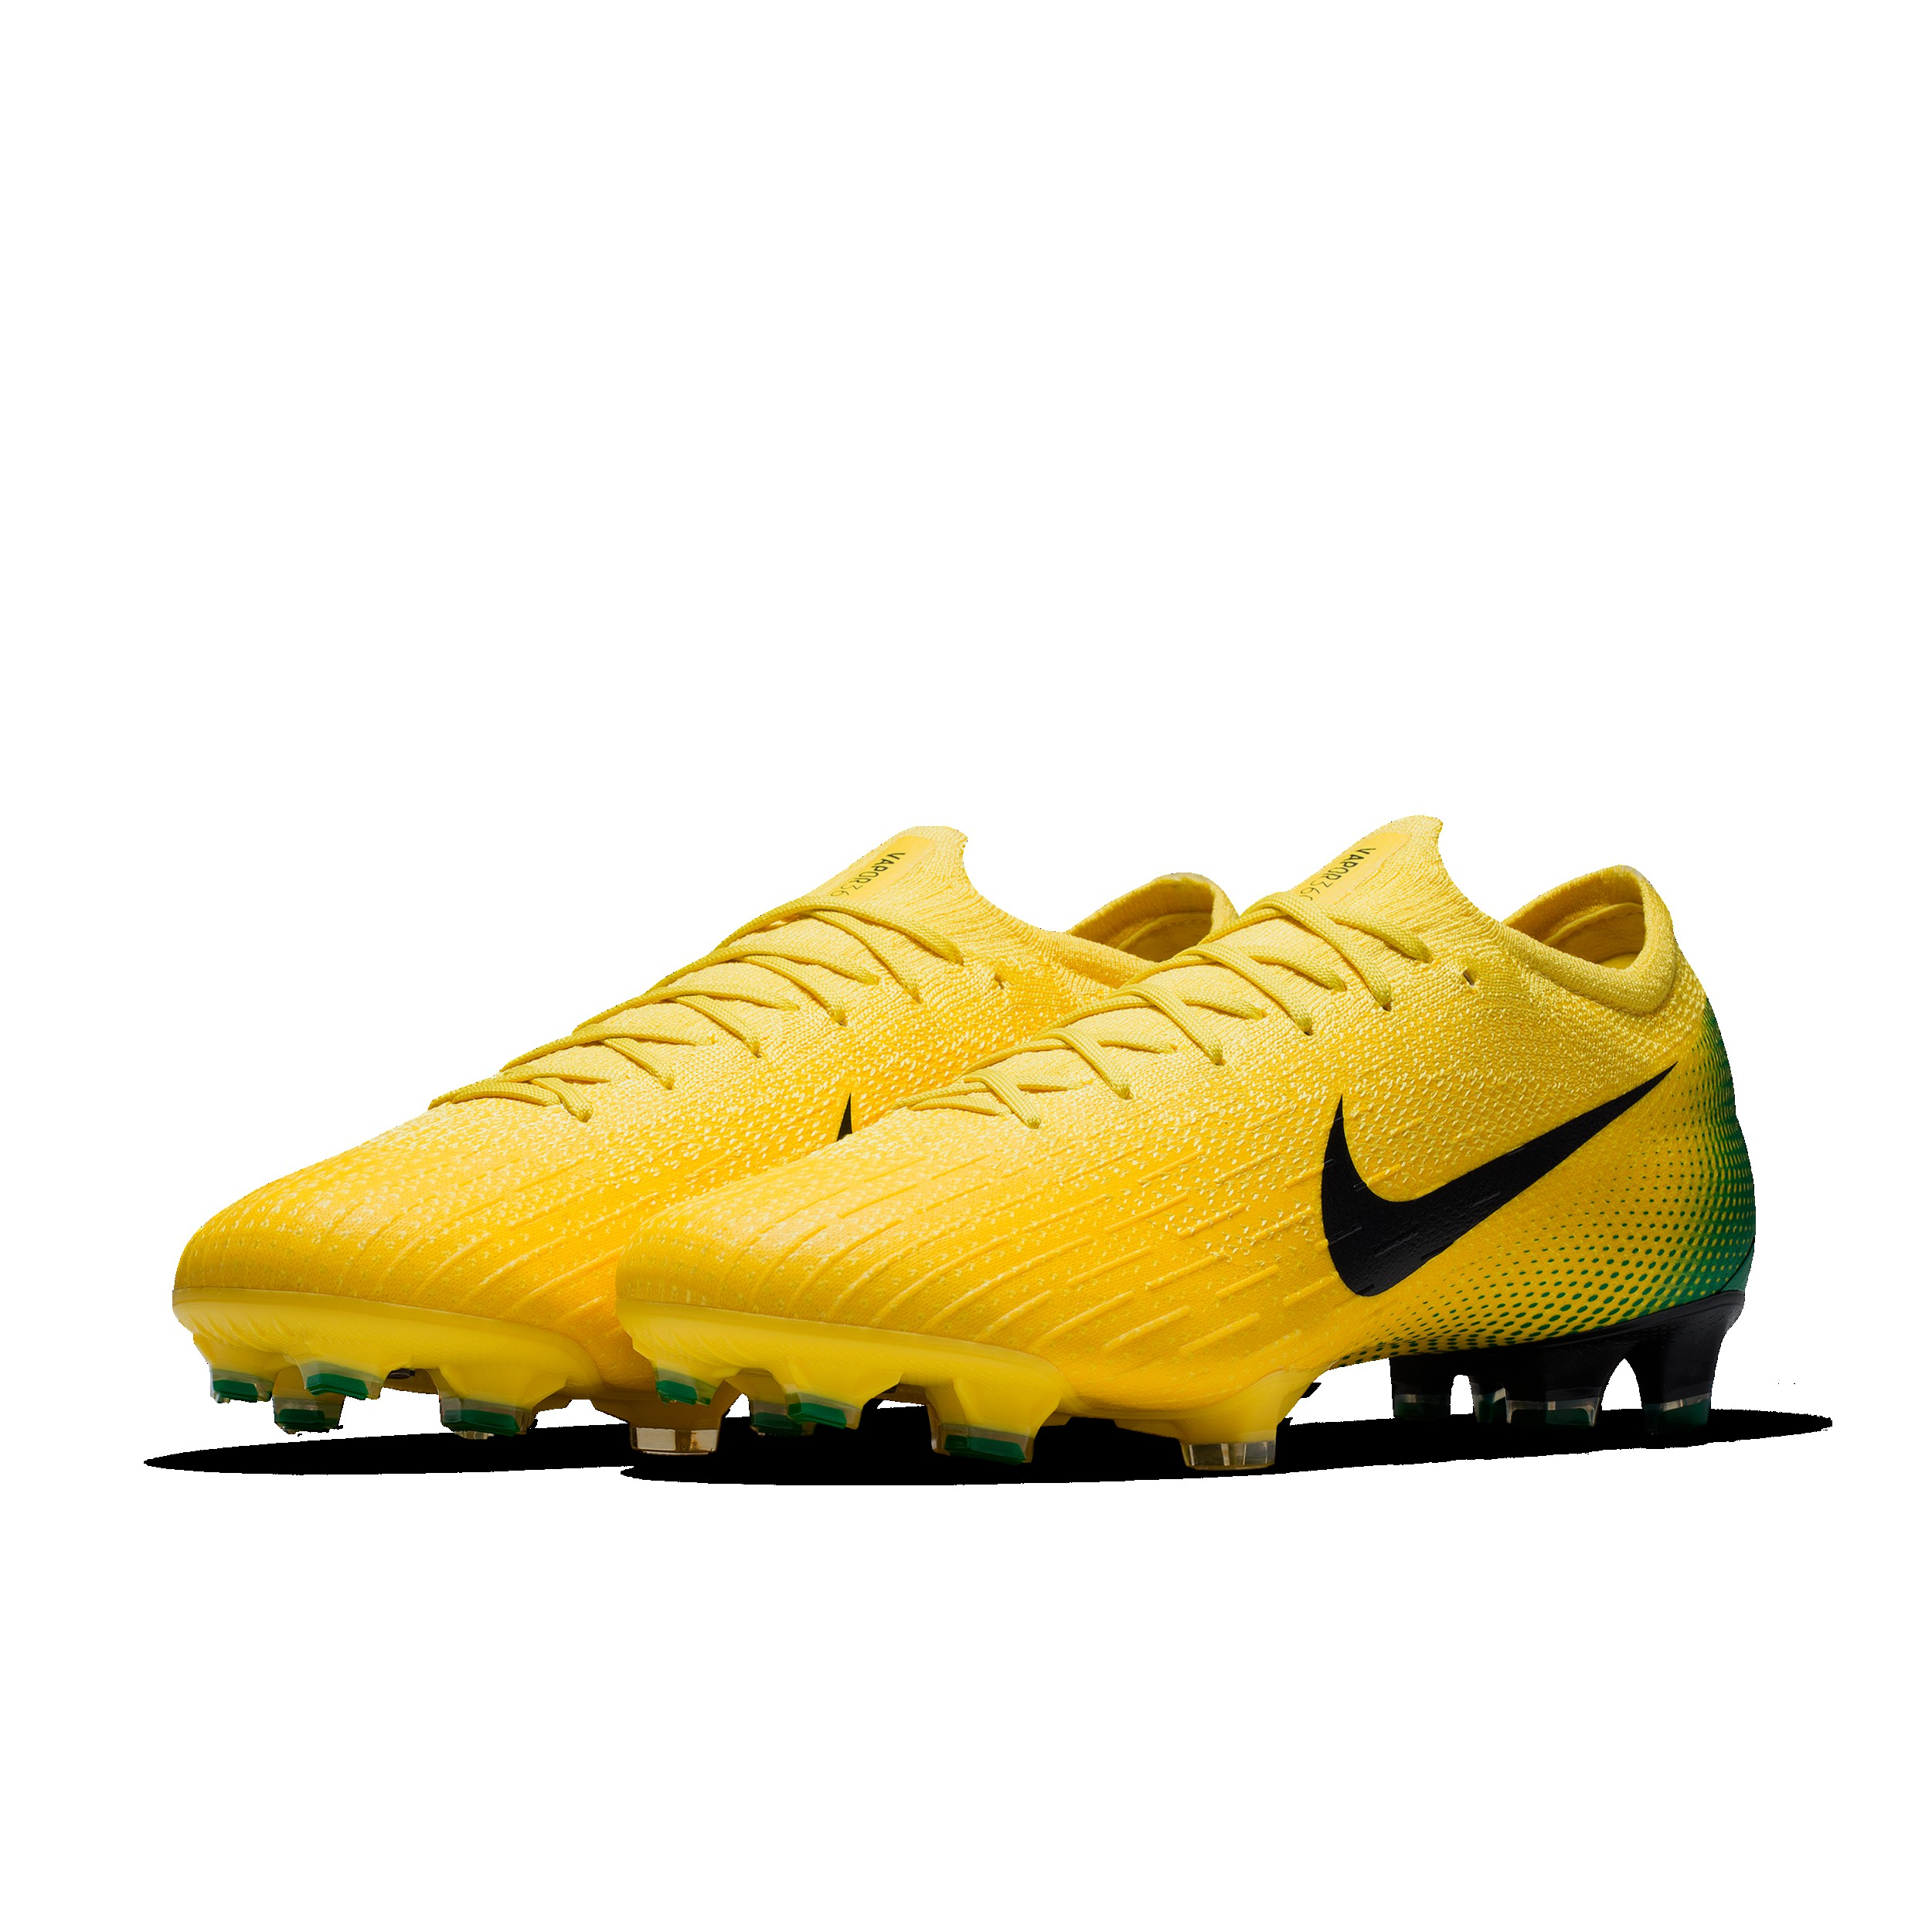 81e754ad7b94 Click to enlarge image  nike mercurial vapor 360 elite id football boot a.jpg ...